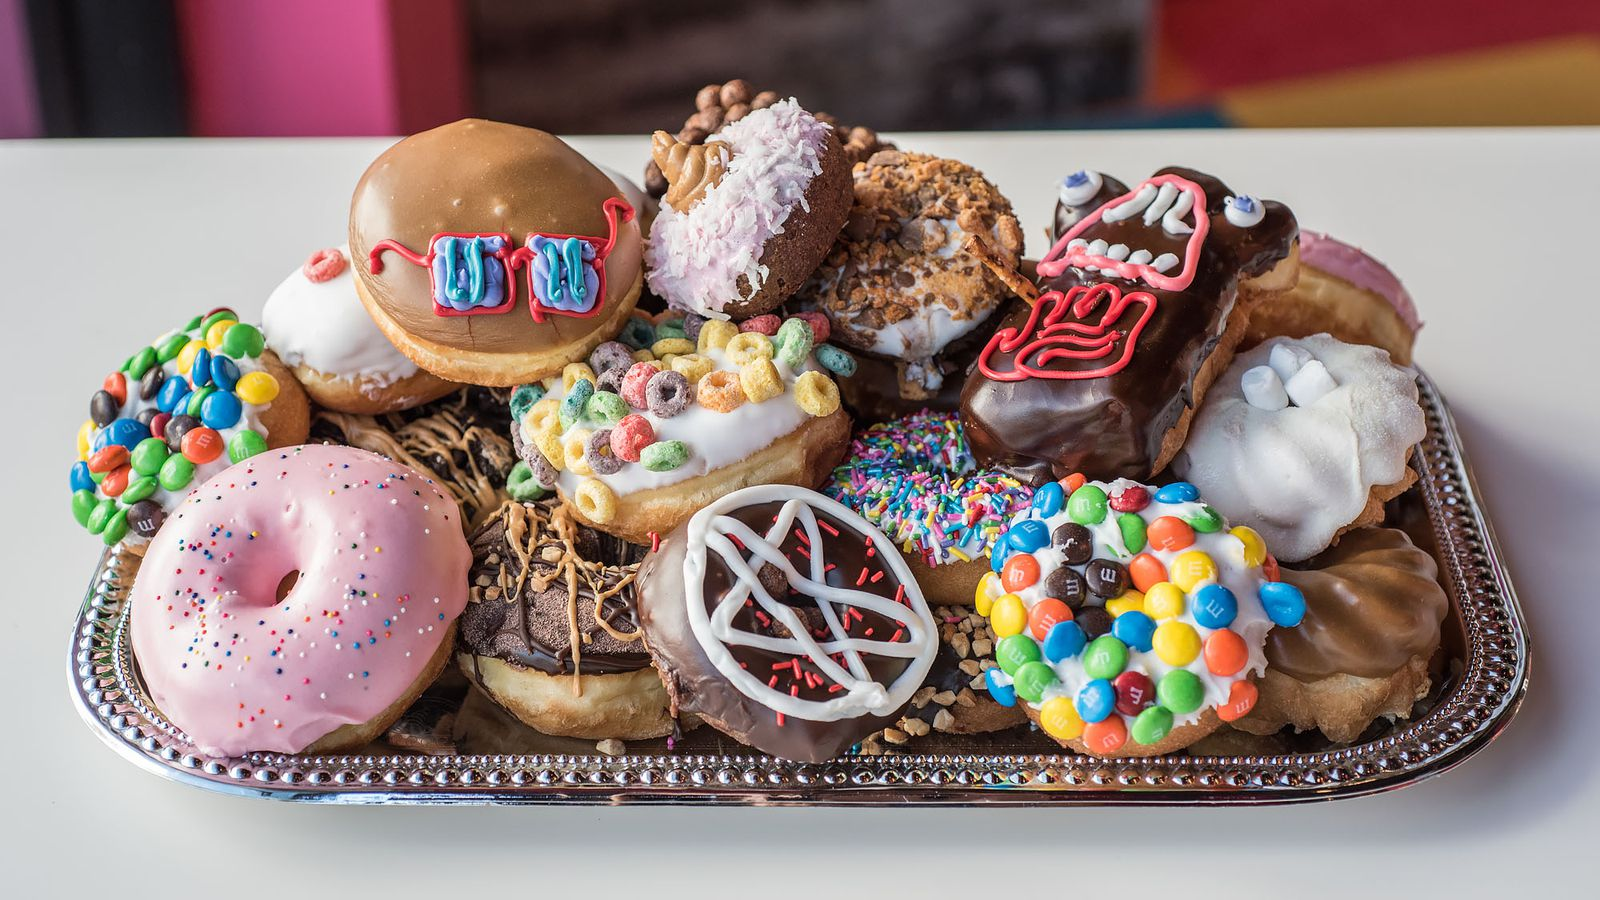 voodoo doughnuts San francisco-based private equity firm fundamental capital has purchased a sizable share of portland's voodoo doughnut, the doughnut shop and tourist attraction famous for its funky creations, whether fried dough topped with bacon or a david bowie tribute doughnut, the pbj reports the exact details around the deal haven't been released.